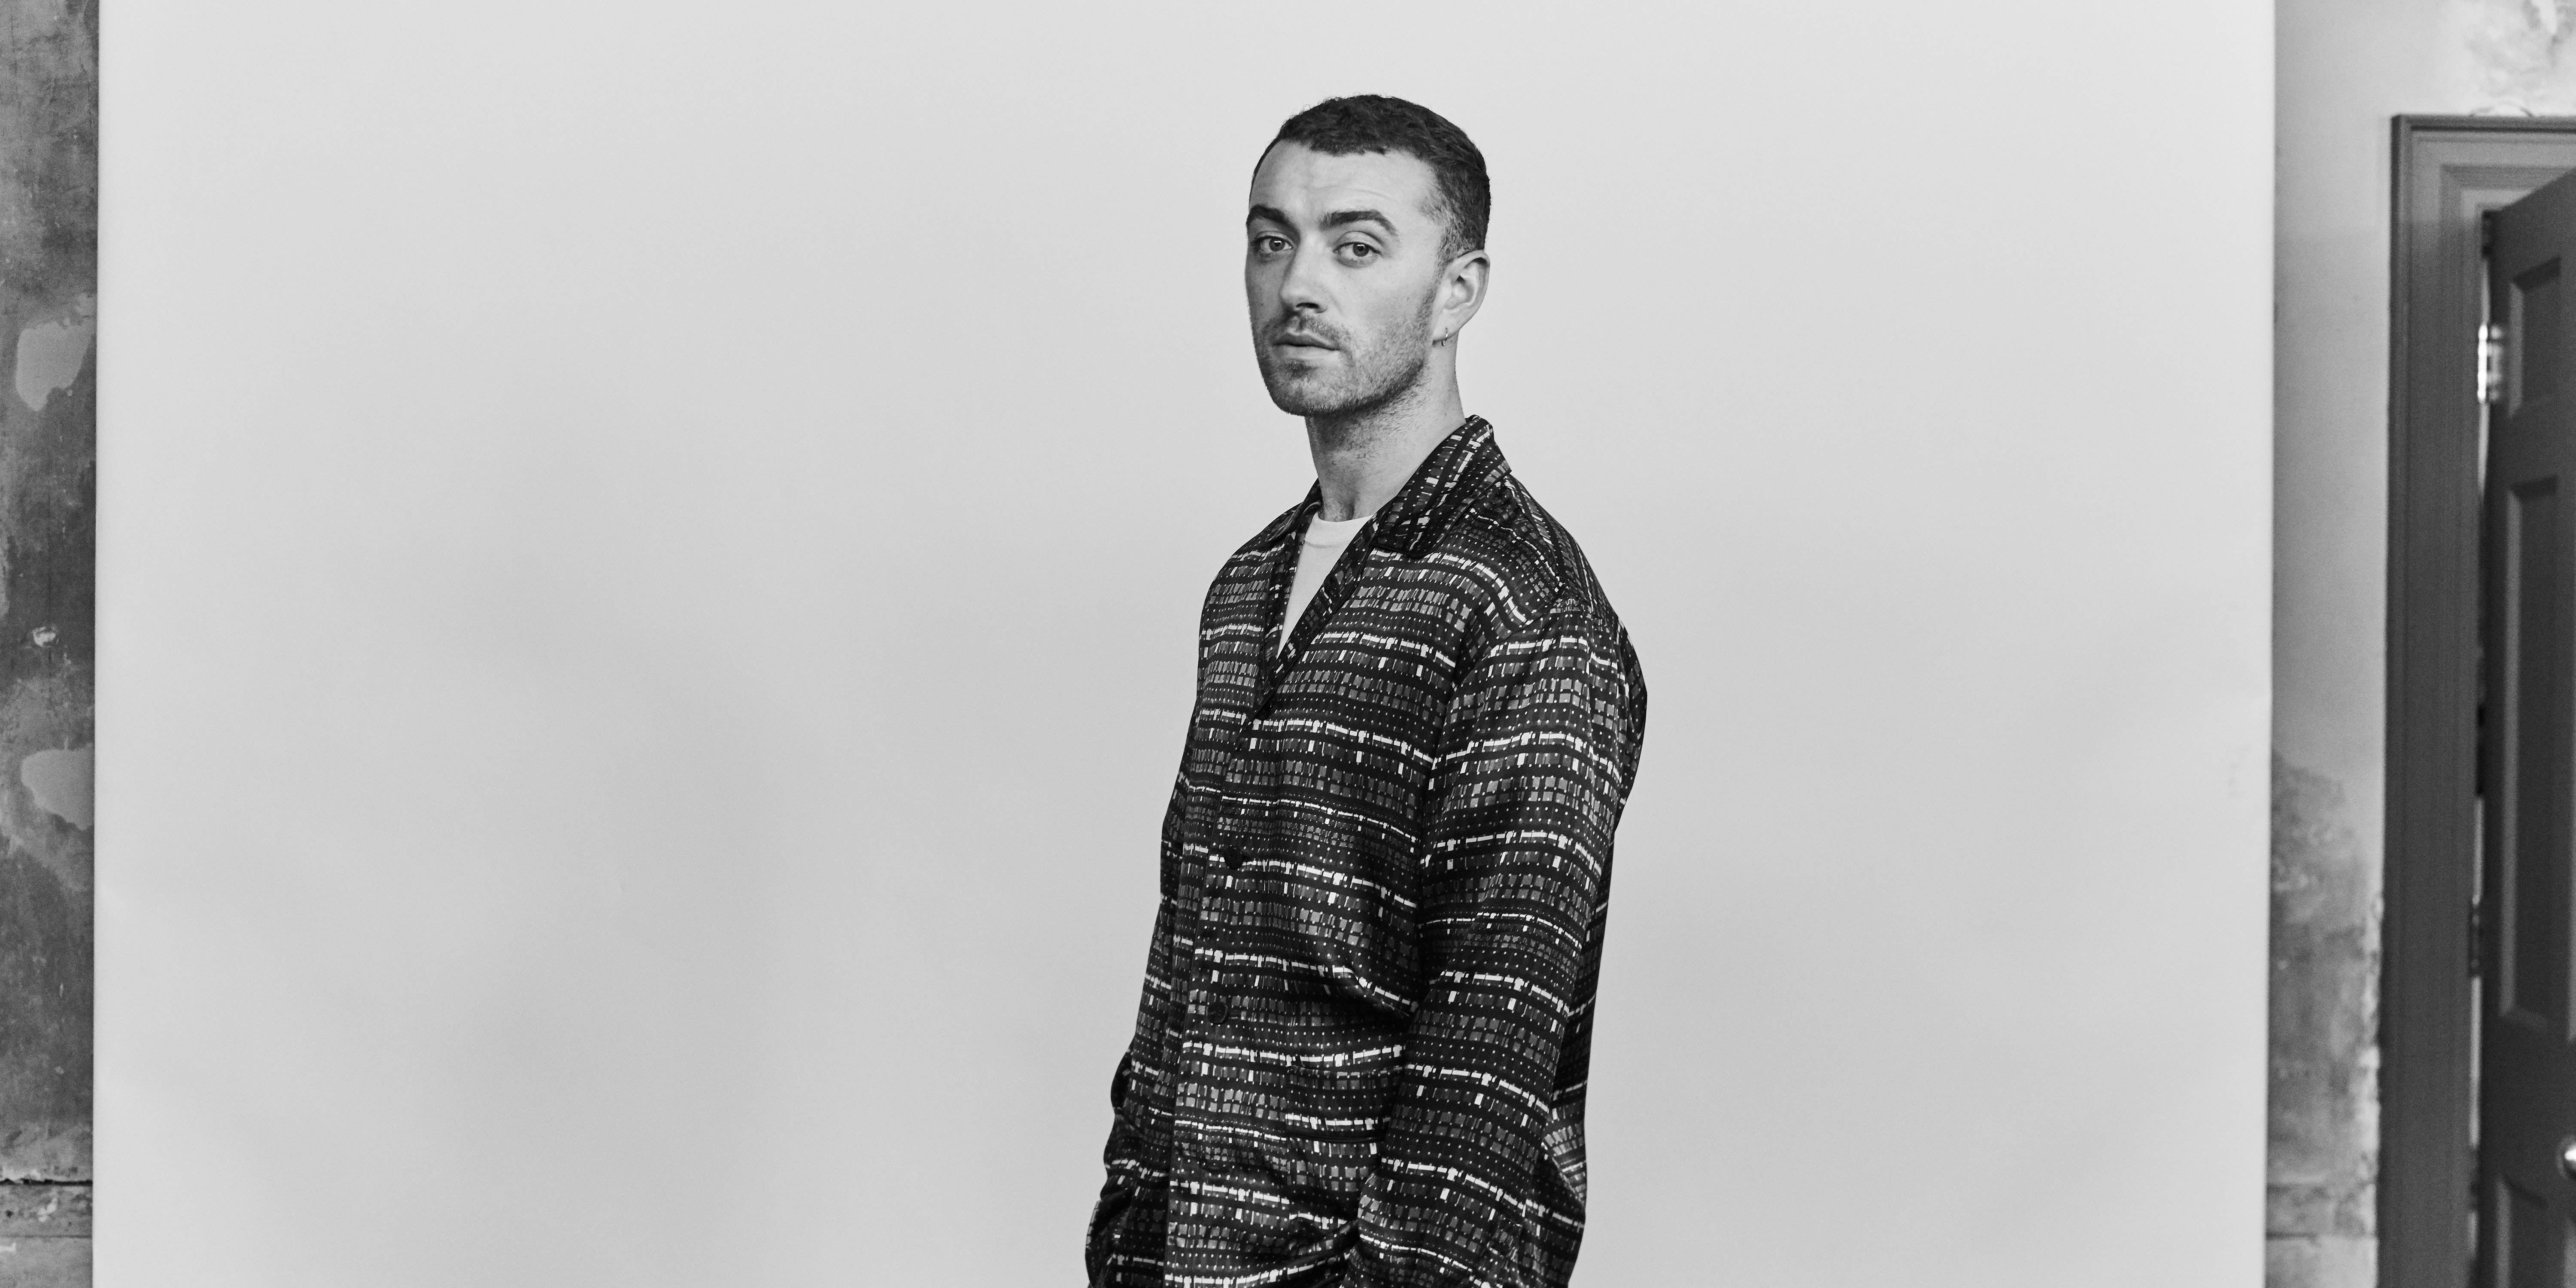 Ticketing details for Sam Smith's show in Singapore announced